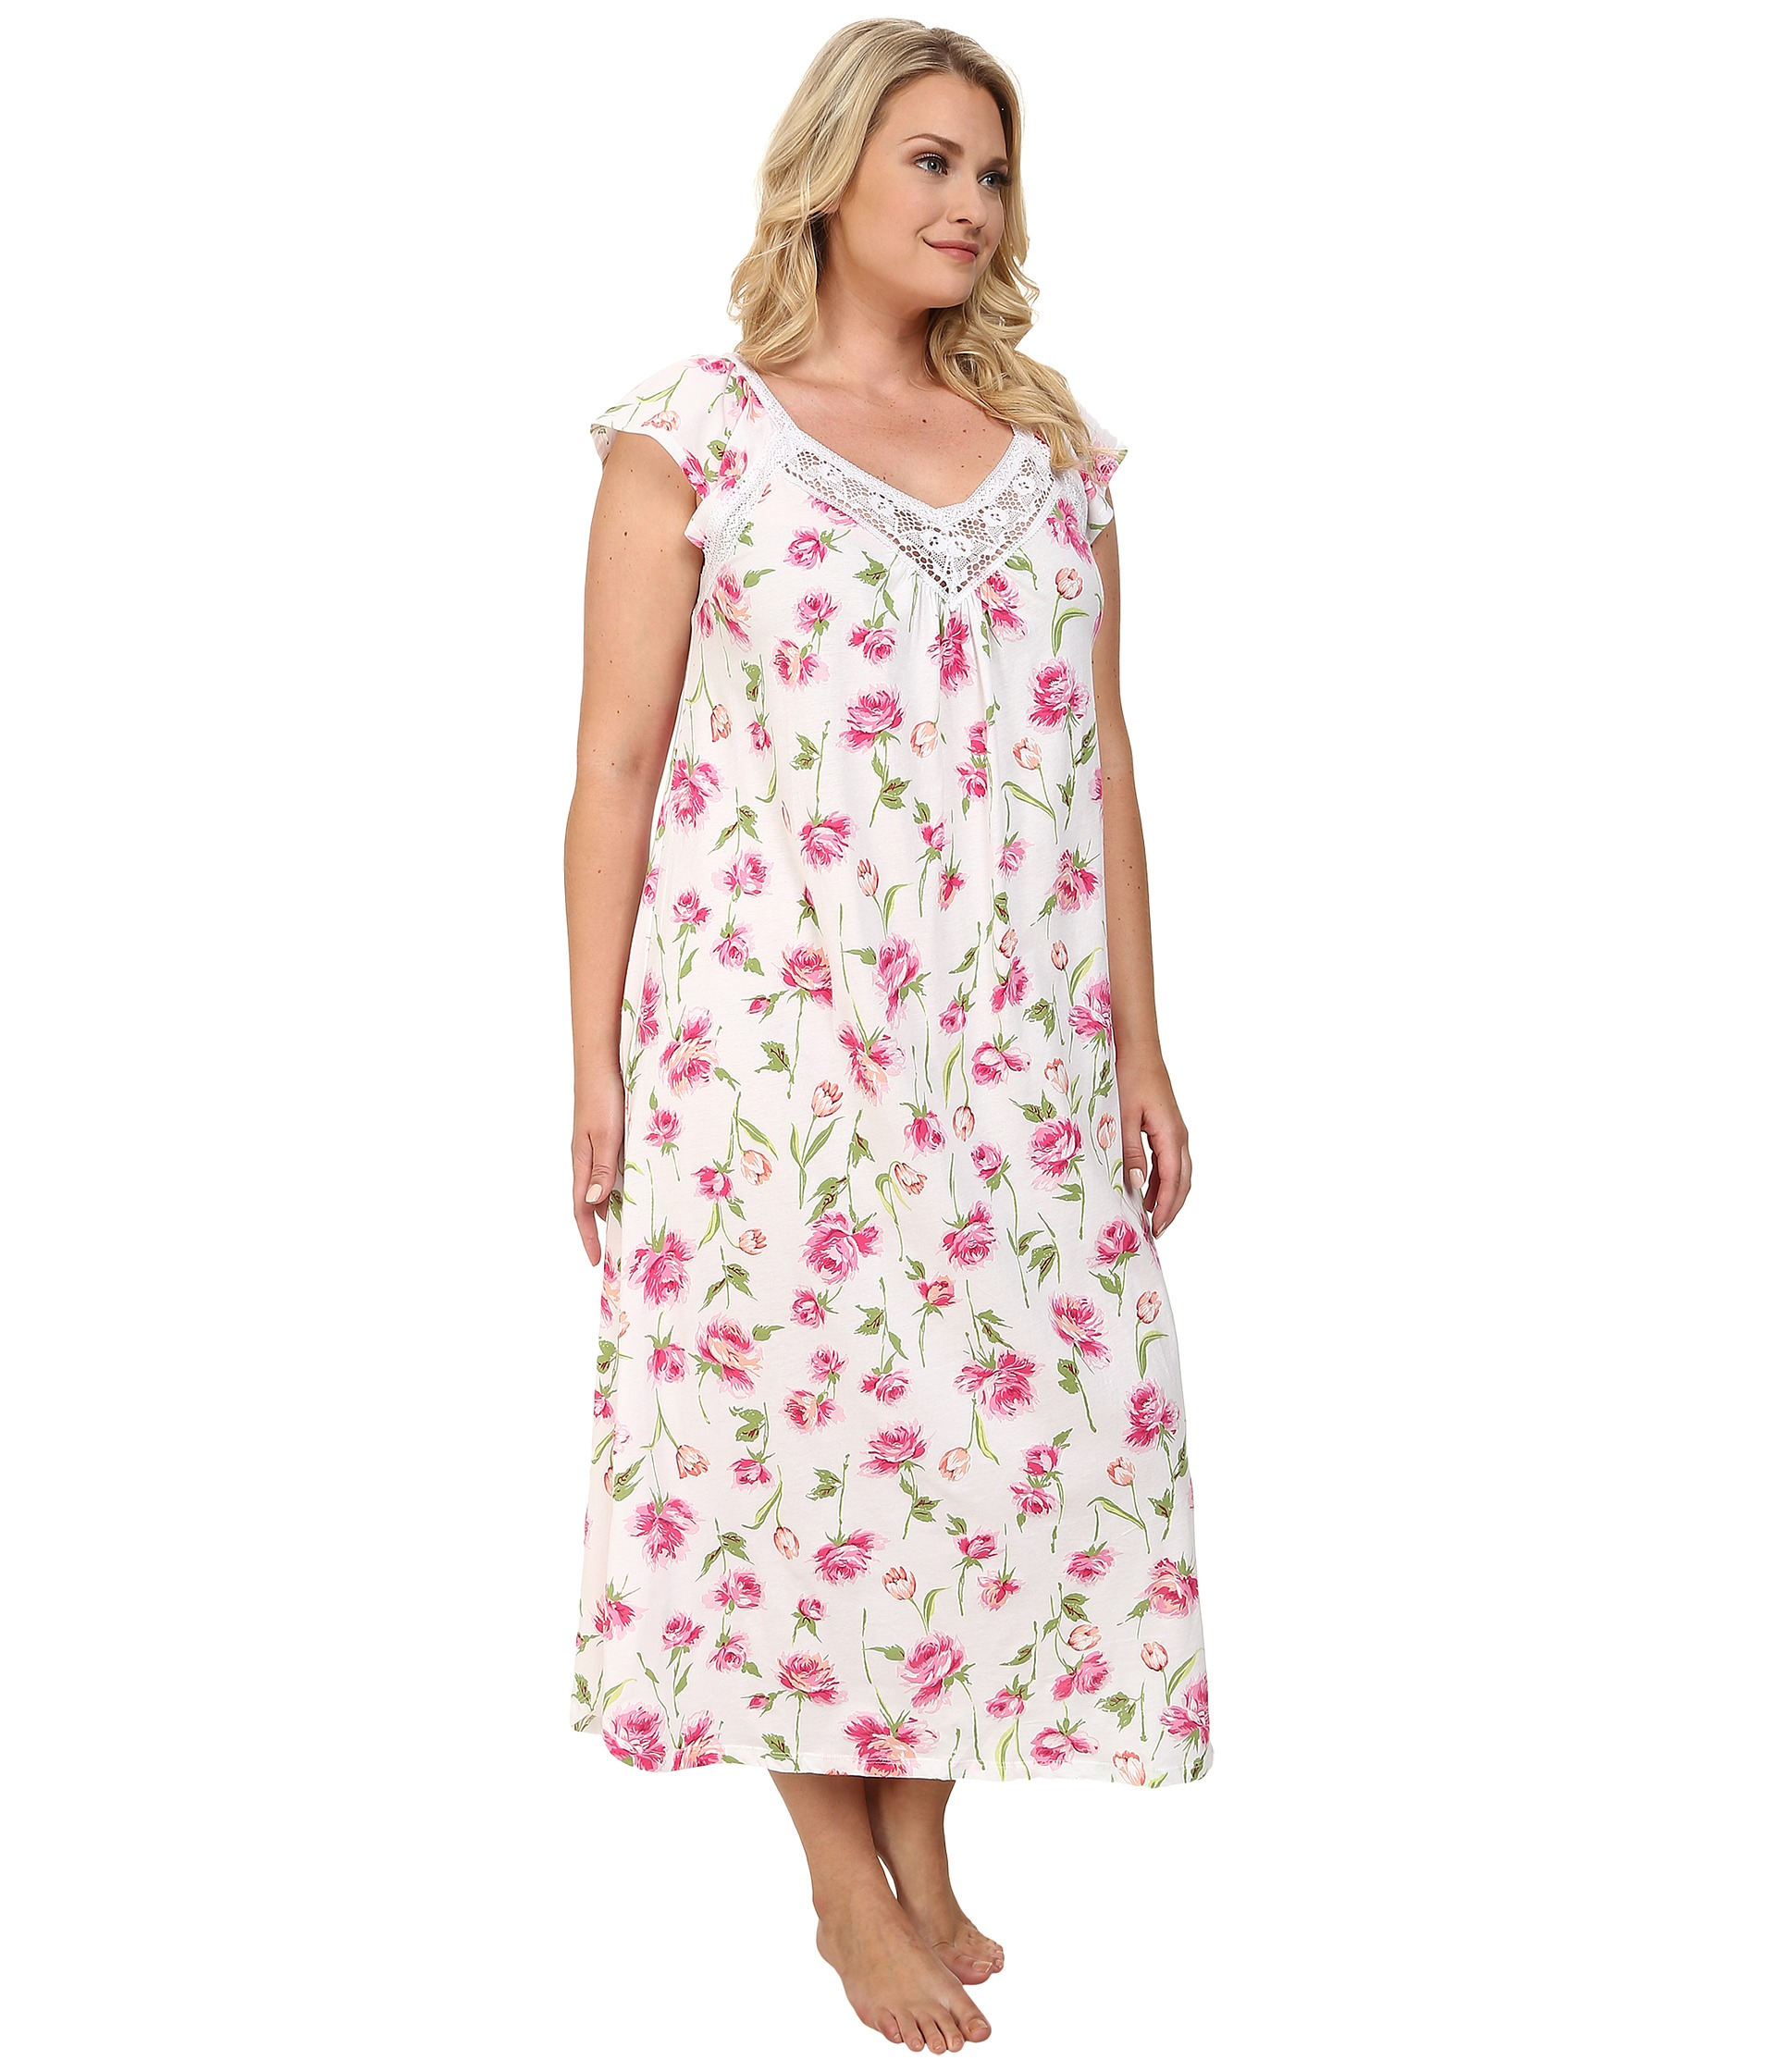 Lyst - Carole Hochman Plus Size Floral Print Long Gown in White